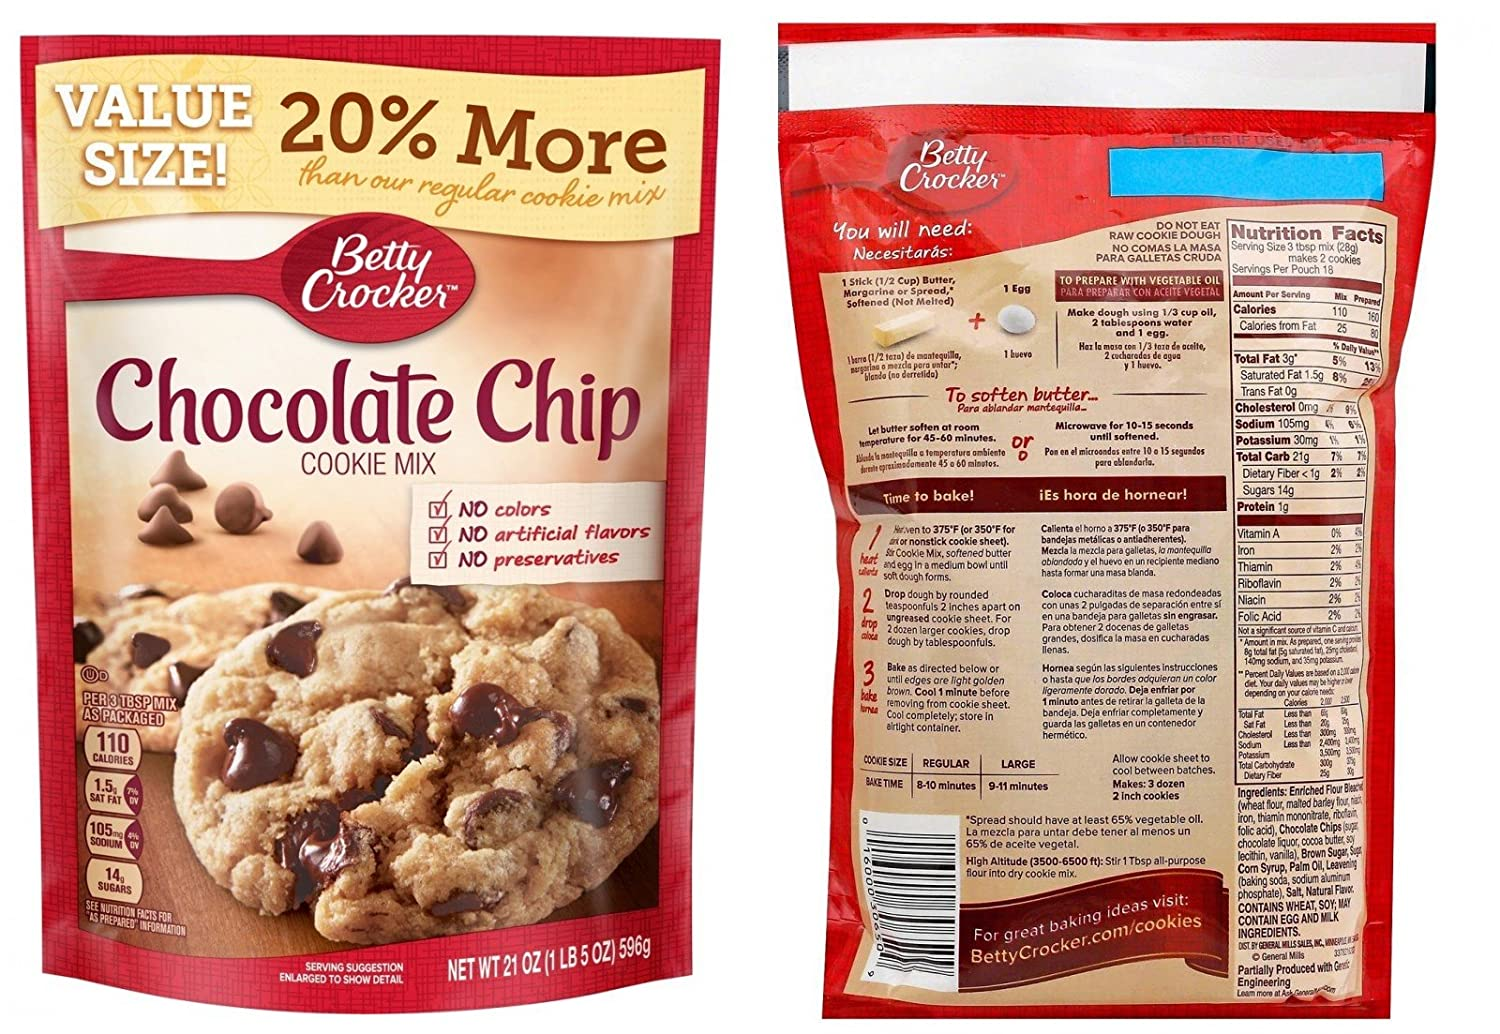 Amazon.com : Assorted Betty Crocker Holiday Baking Cookie Mix Variety Bundle - Sugar, Chocolate Chip, Peanut Butter (Value Packs), Snickerdoodle & Oatmeal ...